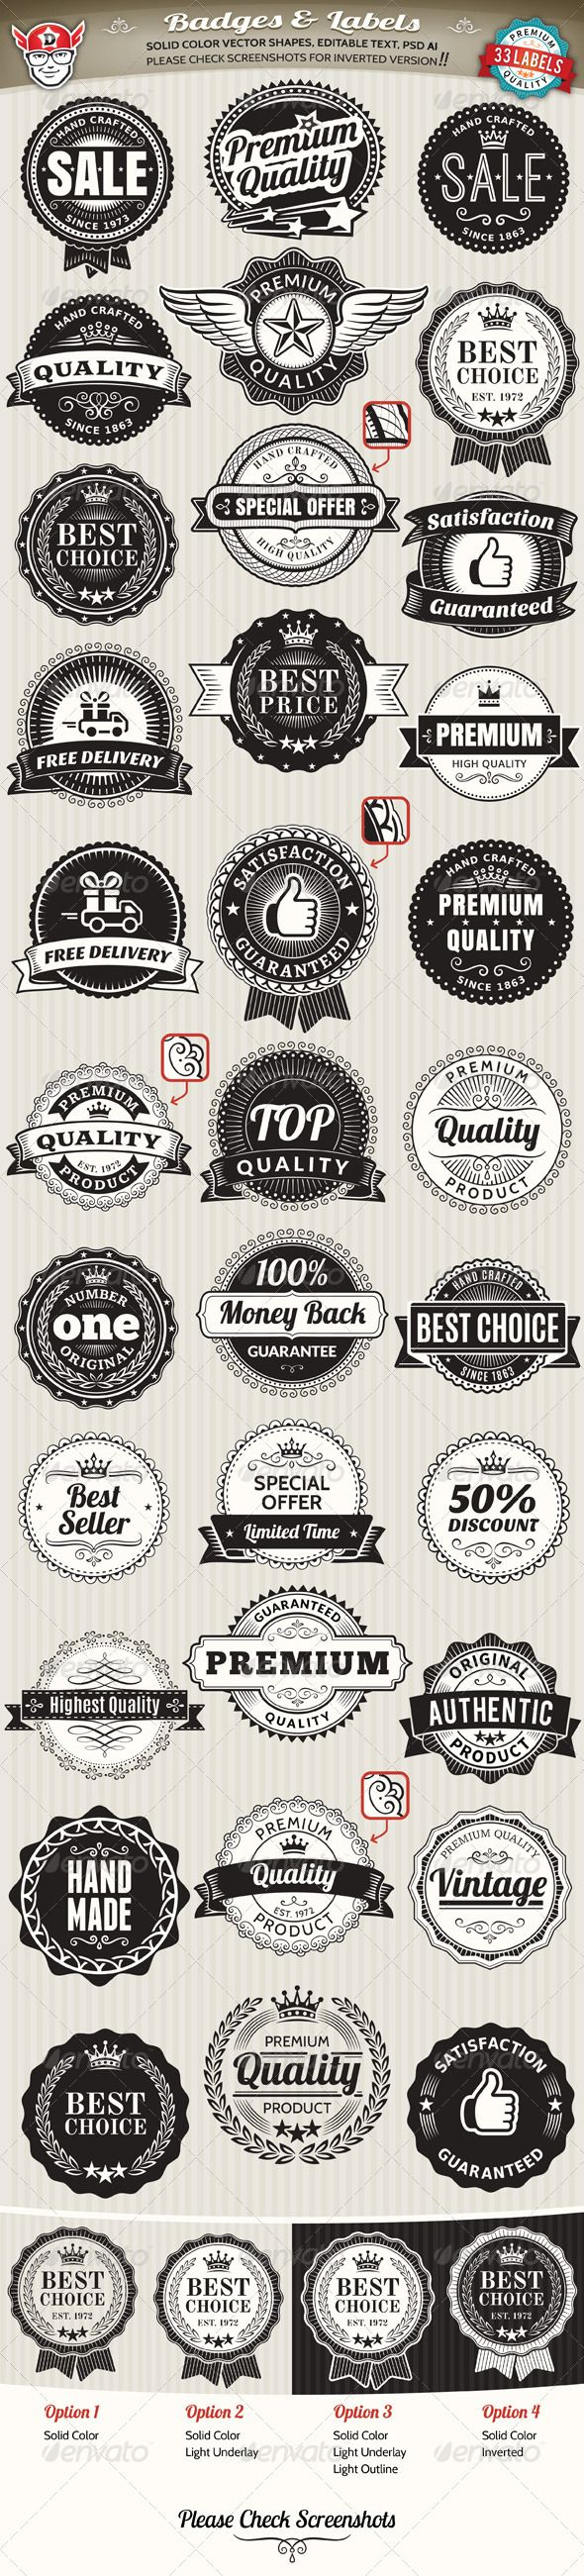 33 Vintage Labels and Badges Template | Buy and Download: http://graphicriver.net/item/33-vintage-labels-and-badges/7132605?WT.ac=category_thumb&WT.z_author=Designful&ref=ksioks